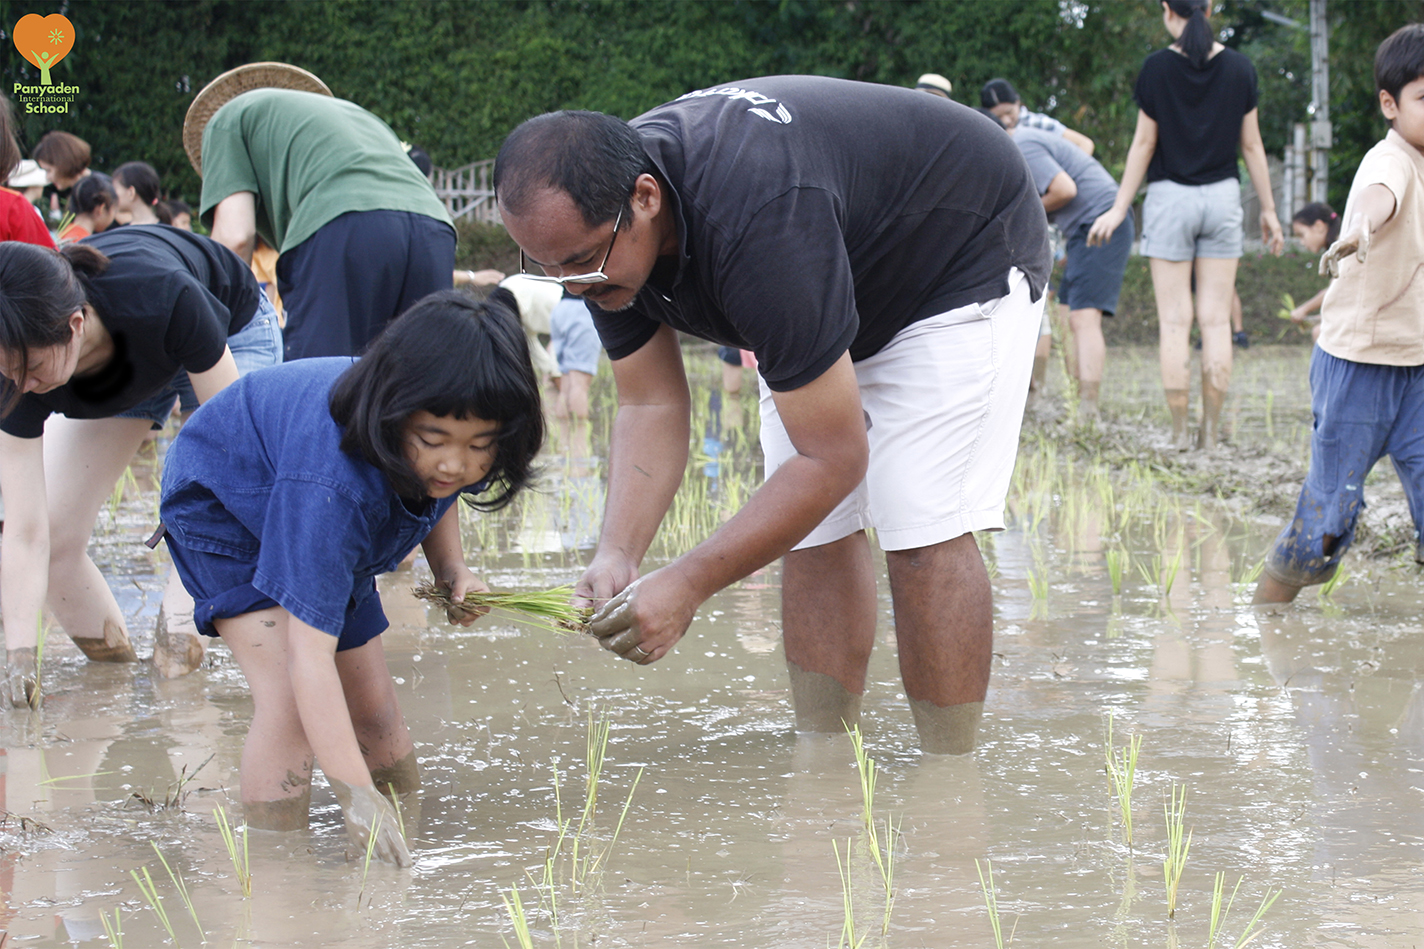 Father and daughter planting rice, Panyaden Rice Planting Day